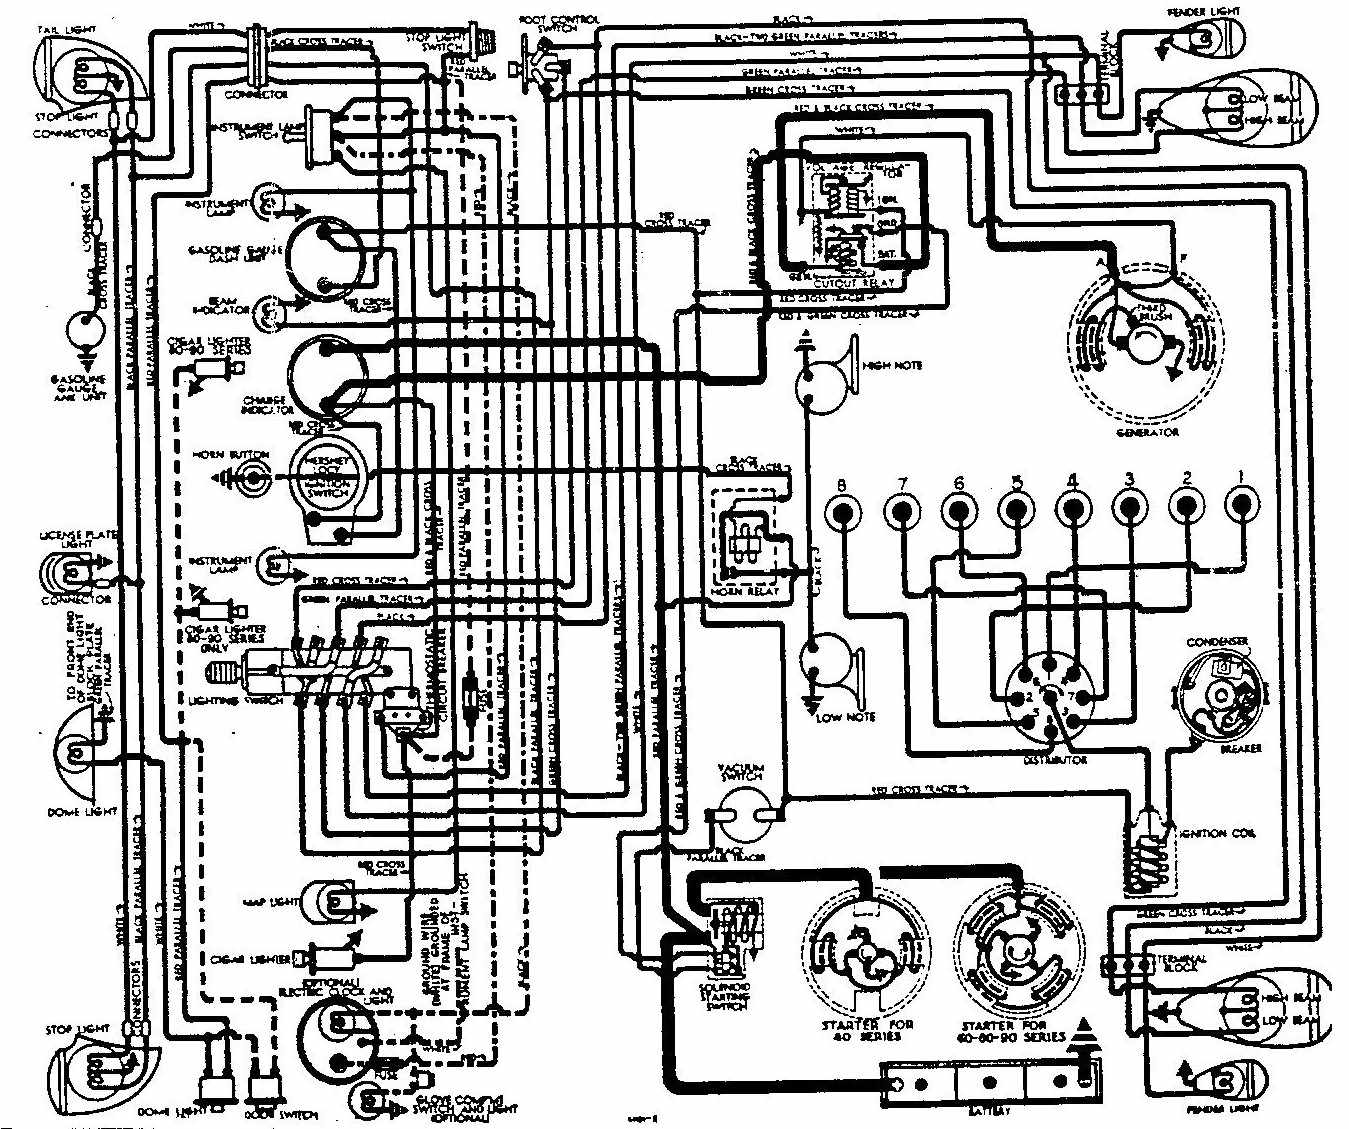 1952 ford wiring diagram ford tractor wiring diagrams wiring diagram 2003 Ford Contour wiring diagram for ford the wiring diagram ford 2000 tractor wiring diagram nodasystech wiring diagram